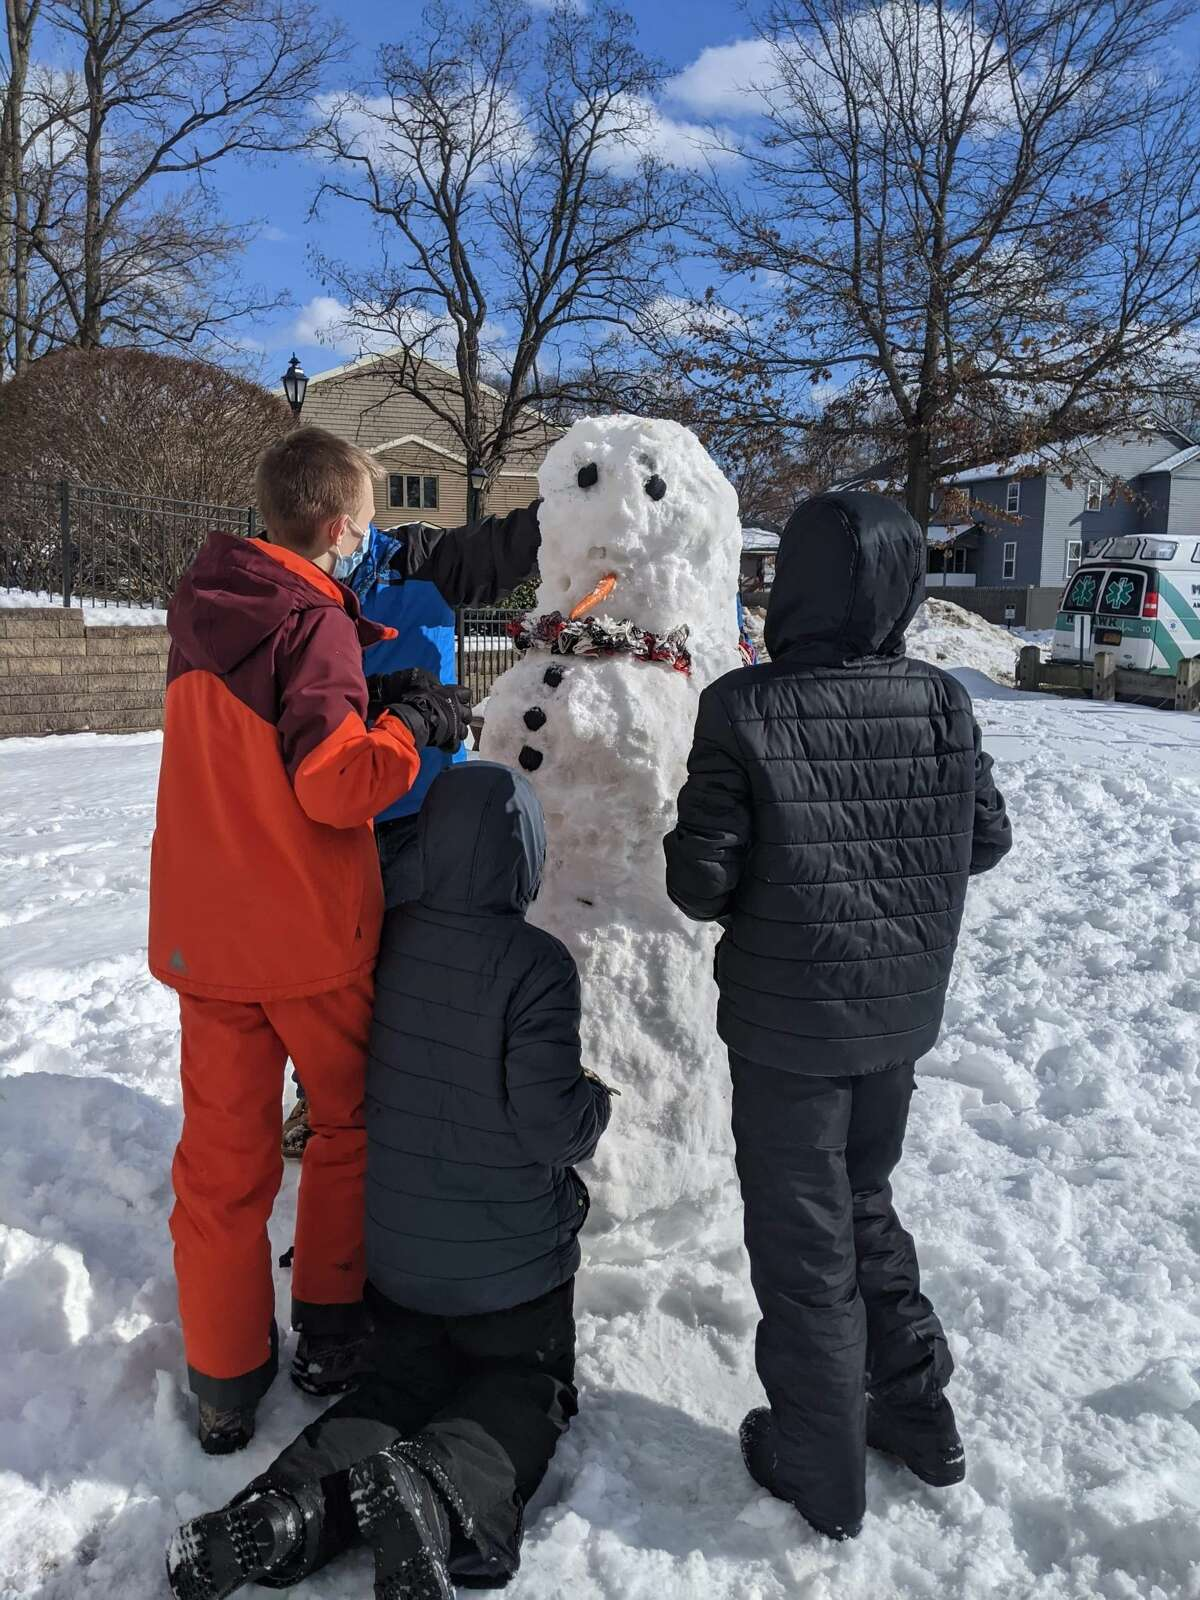 SCHENECTADY -- Local Troop 3357B gathered together to bring smiles to seniors' faces by making snowmen outside Kingsway Assisted Living Community's windows for them to enjoy. They also built them along the walkway for essential employees at Kingsway and Mohawk Ambulance as they came in to report for work. With pandemic limitations on young people's and senior's activities, and because essential workers have to gear up in PPE this was a great way to embrace the situation and bringing smiles to seniors faces, essential workers but also the kids, organizer Lindsay Phillips said.